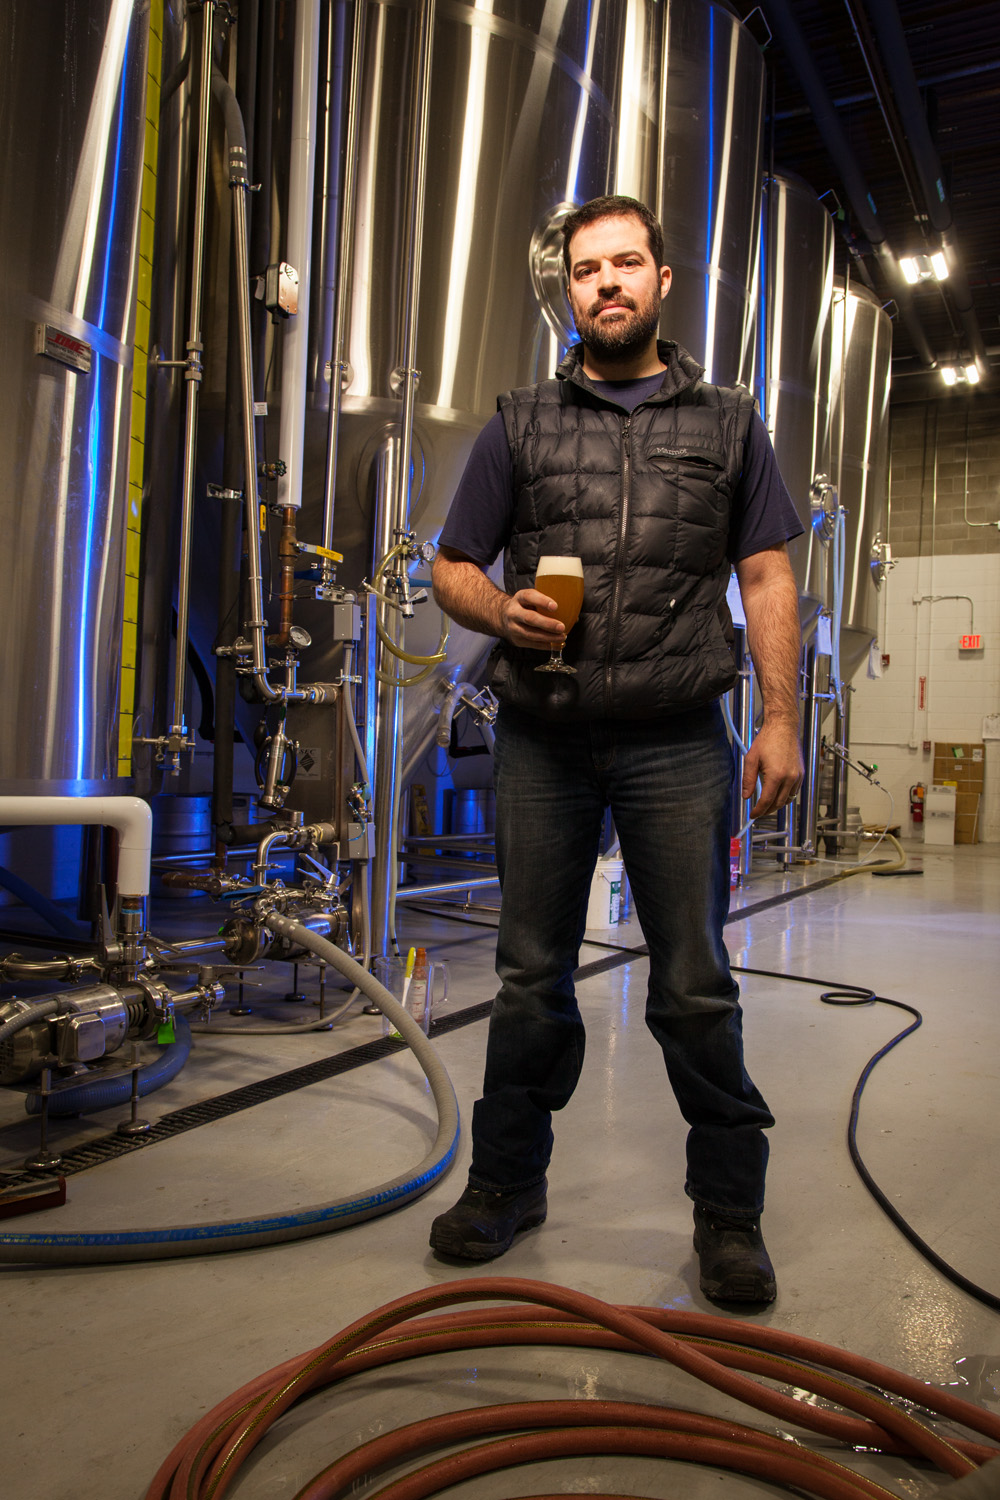 Jean Claude Tetreault, Brewmaster Trillium Brewing Co. Canton, MA Established in 2013